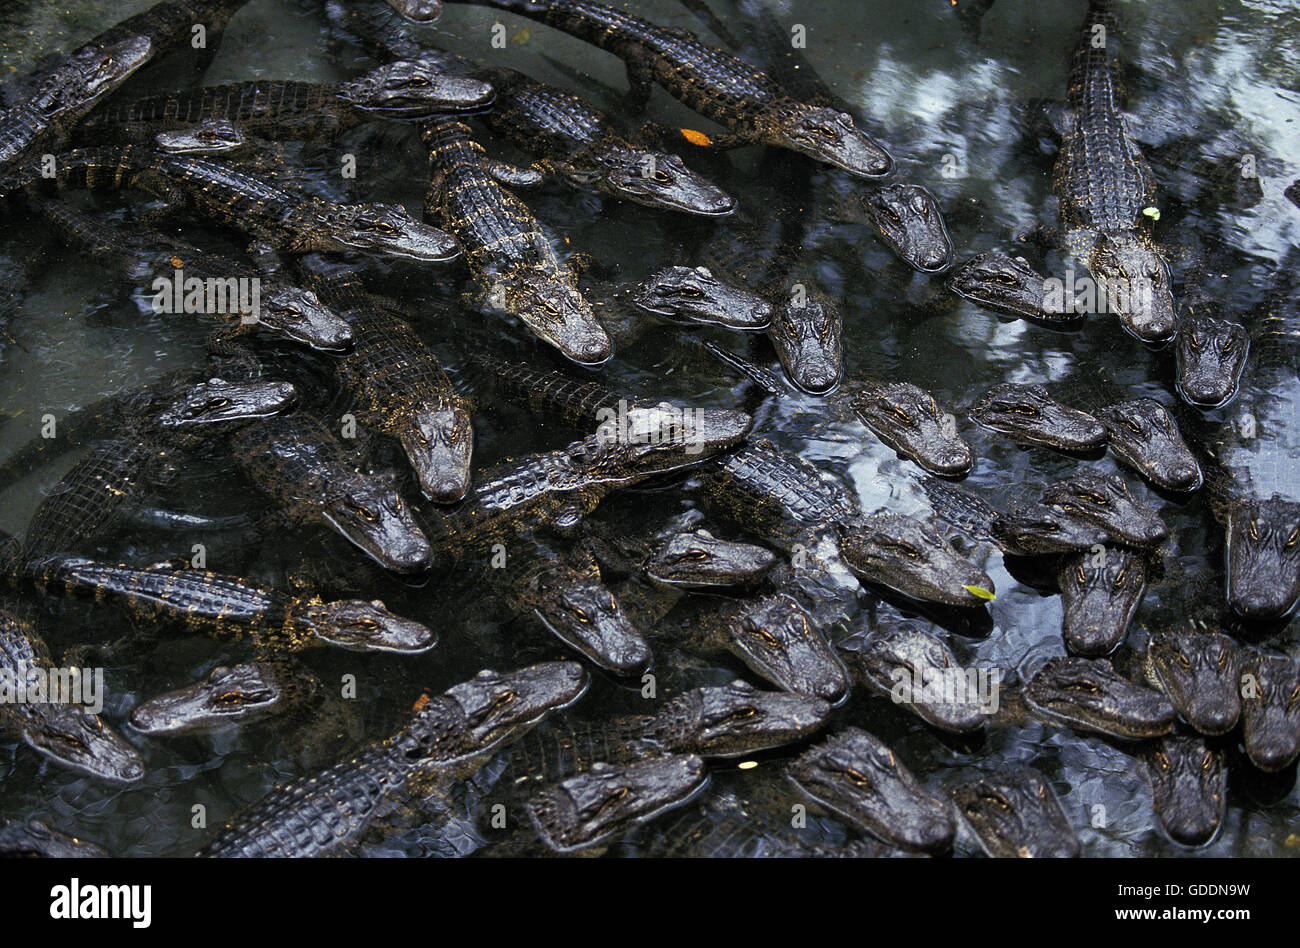 American Alligator, alligator mississipiensis, Head of Youngs at Surface - Stock Image